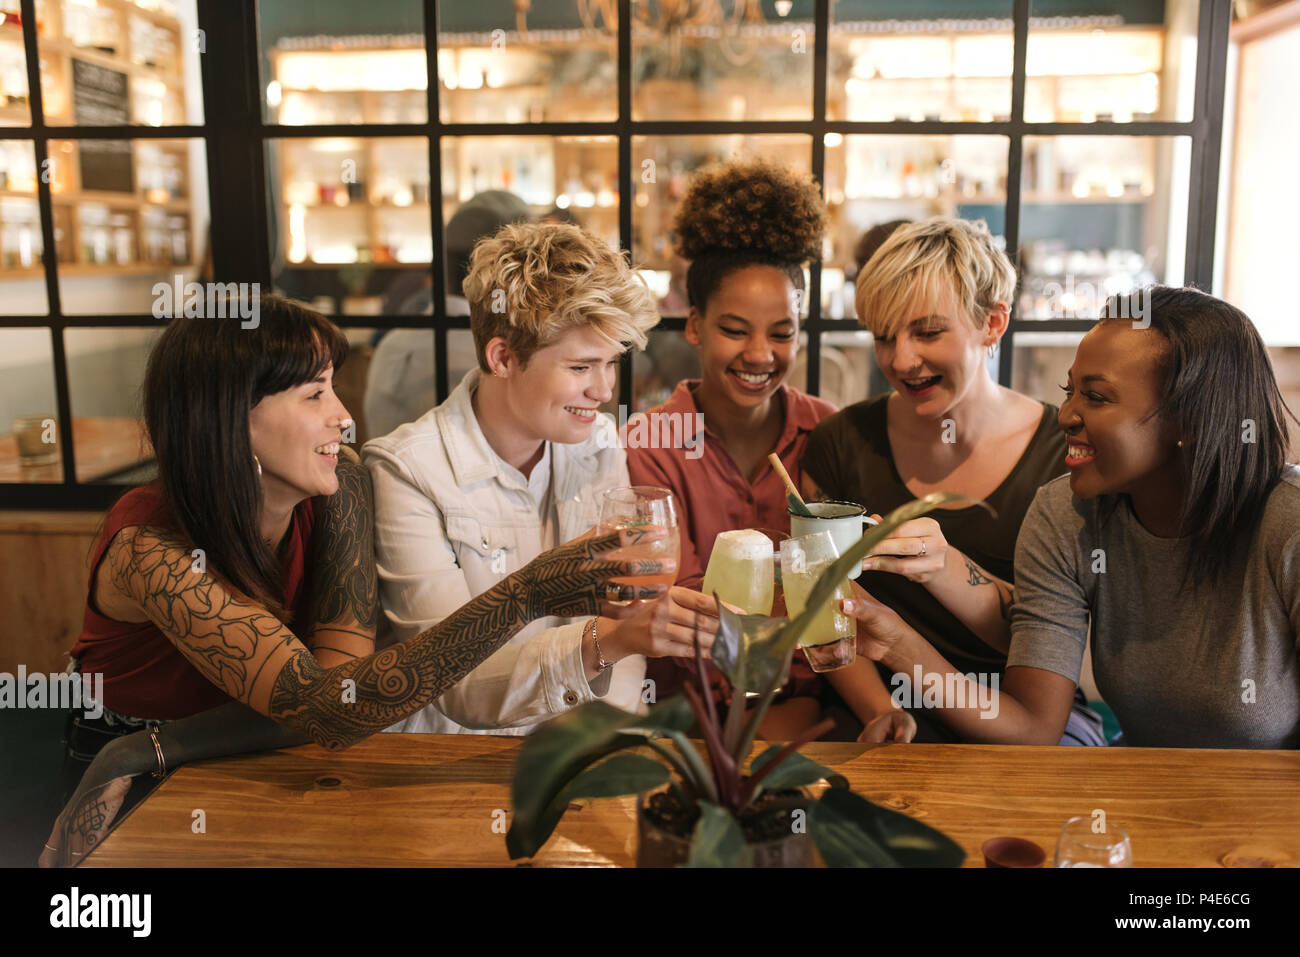 Diverse girlfriends toasting together at a trendy bistro table - Stock Image